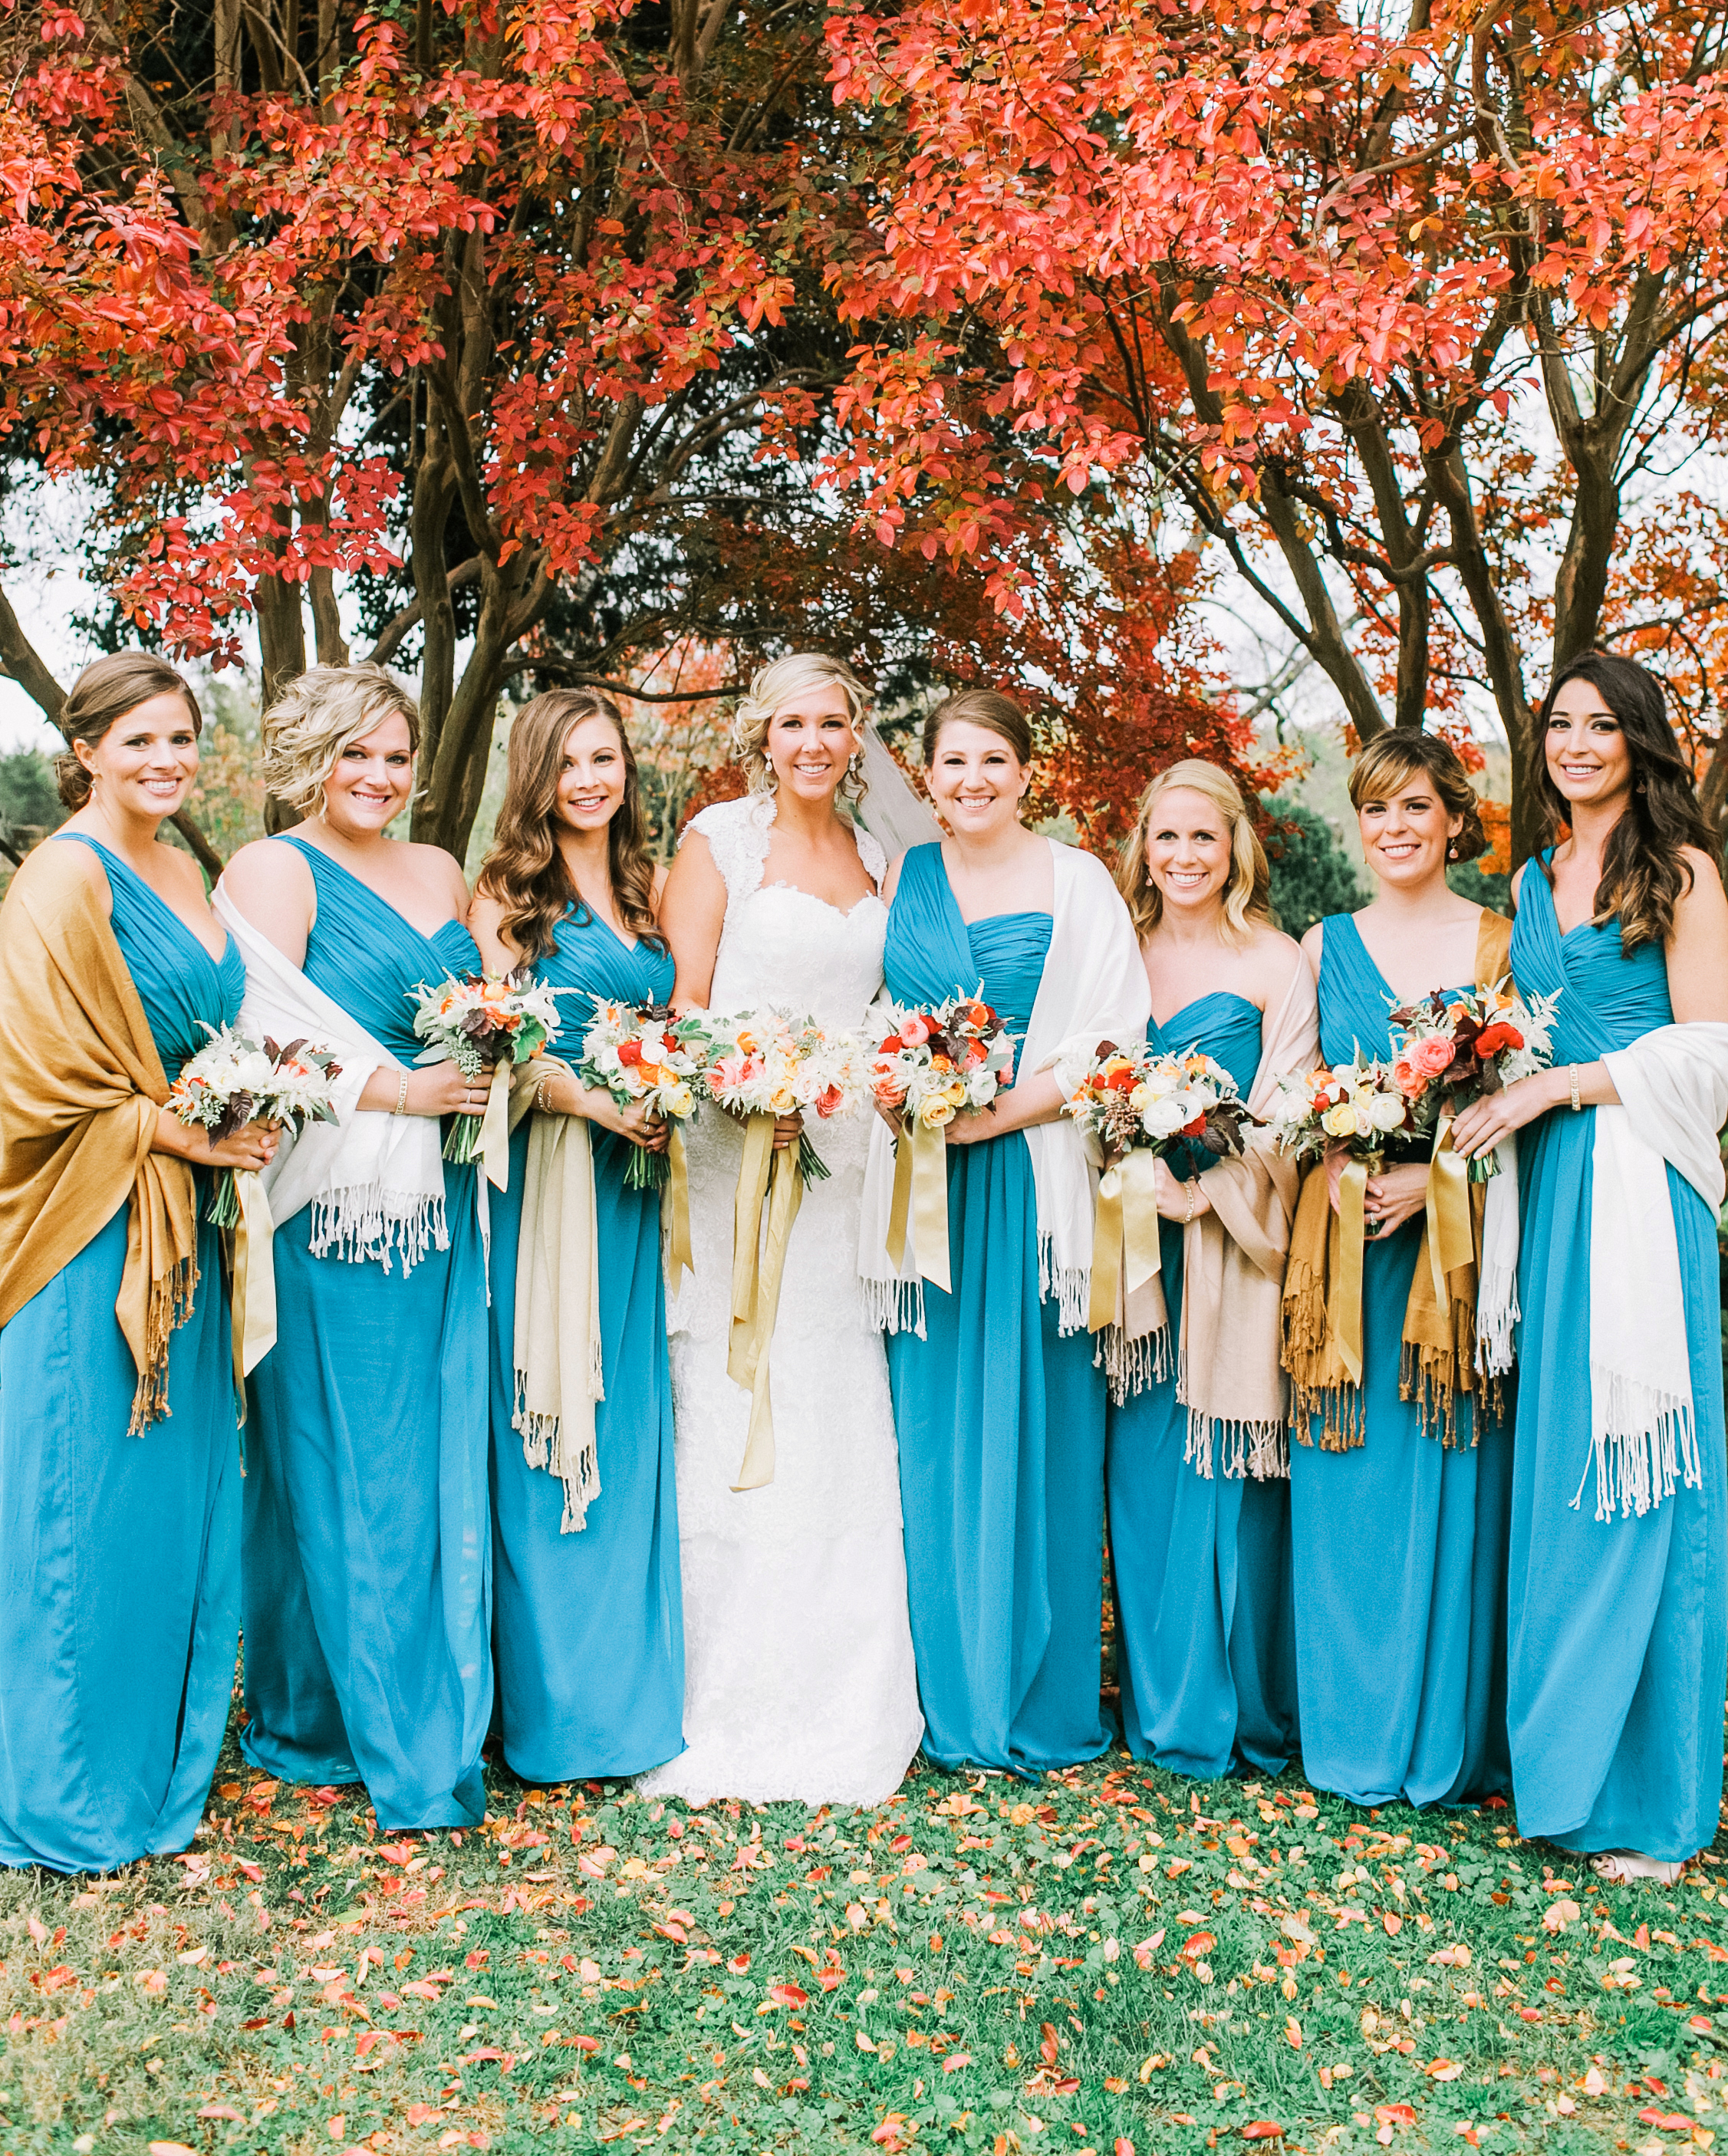 brittany-andrew-wedding-bridesmaids-023-s112067-0715.jpg